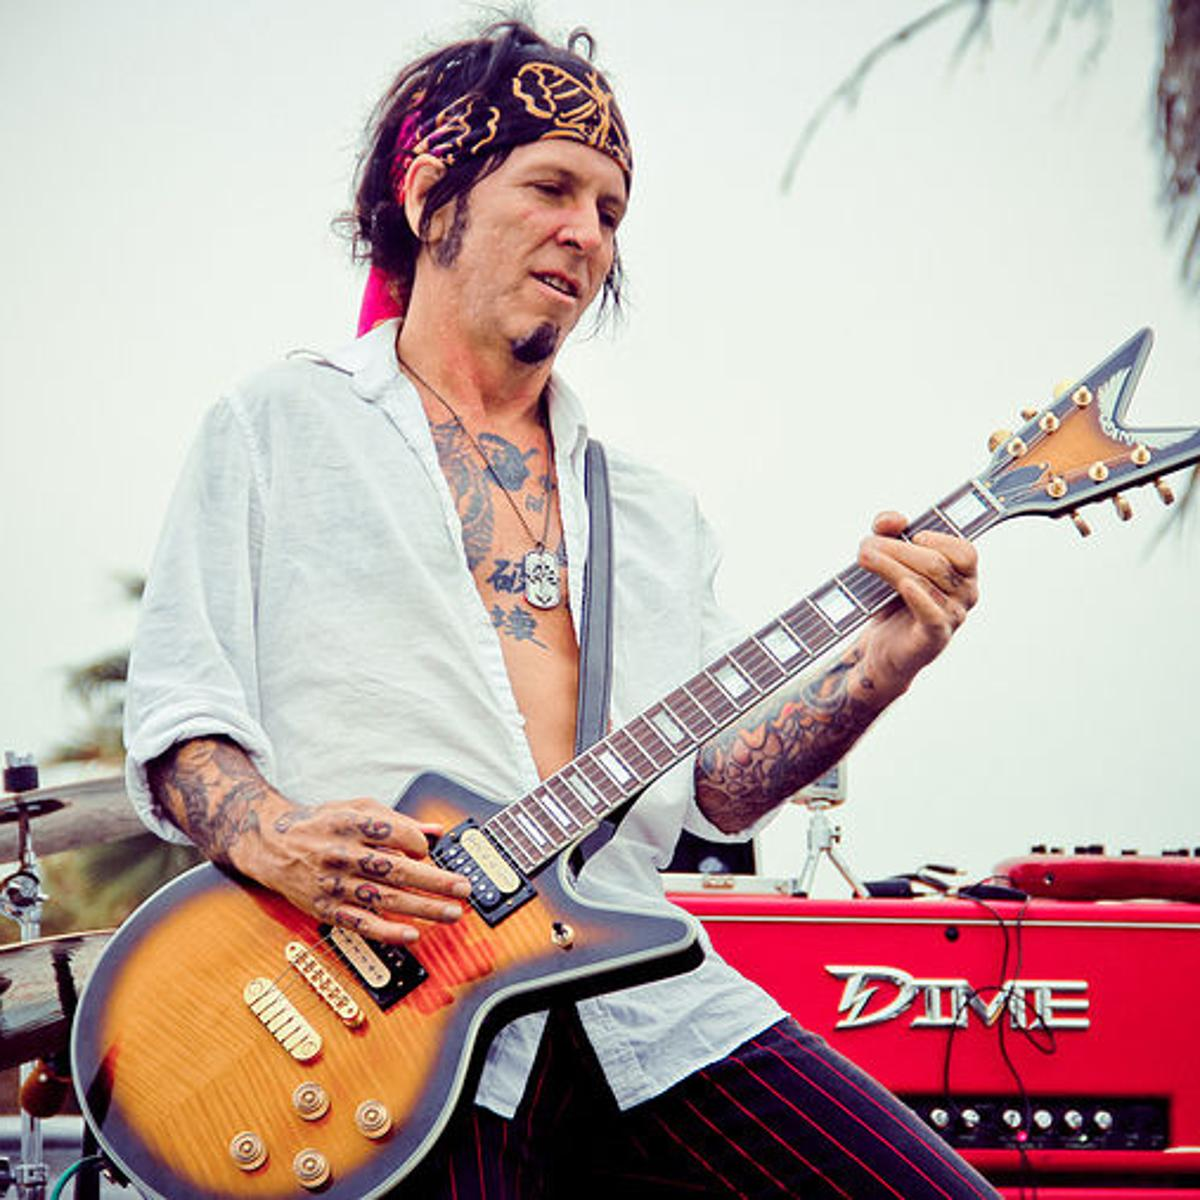 Tracii Guns invades the Bin | Arts & Entertainment | daily-journal.com